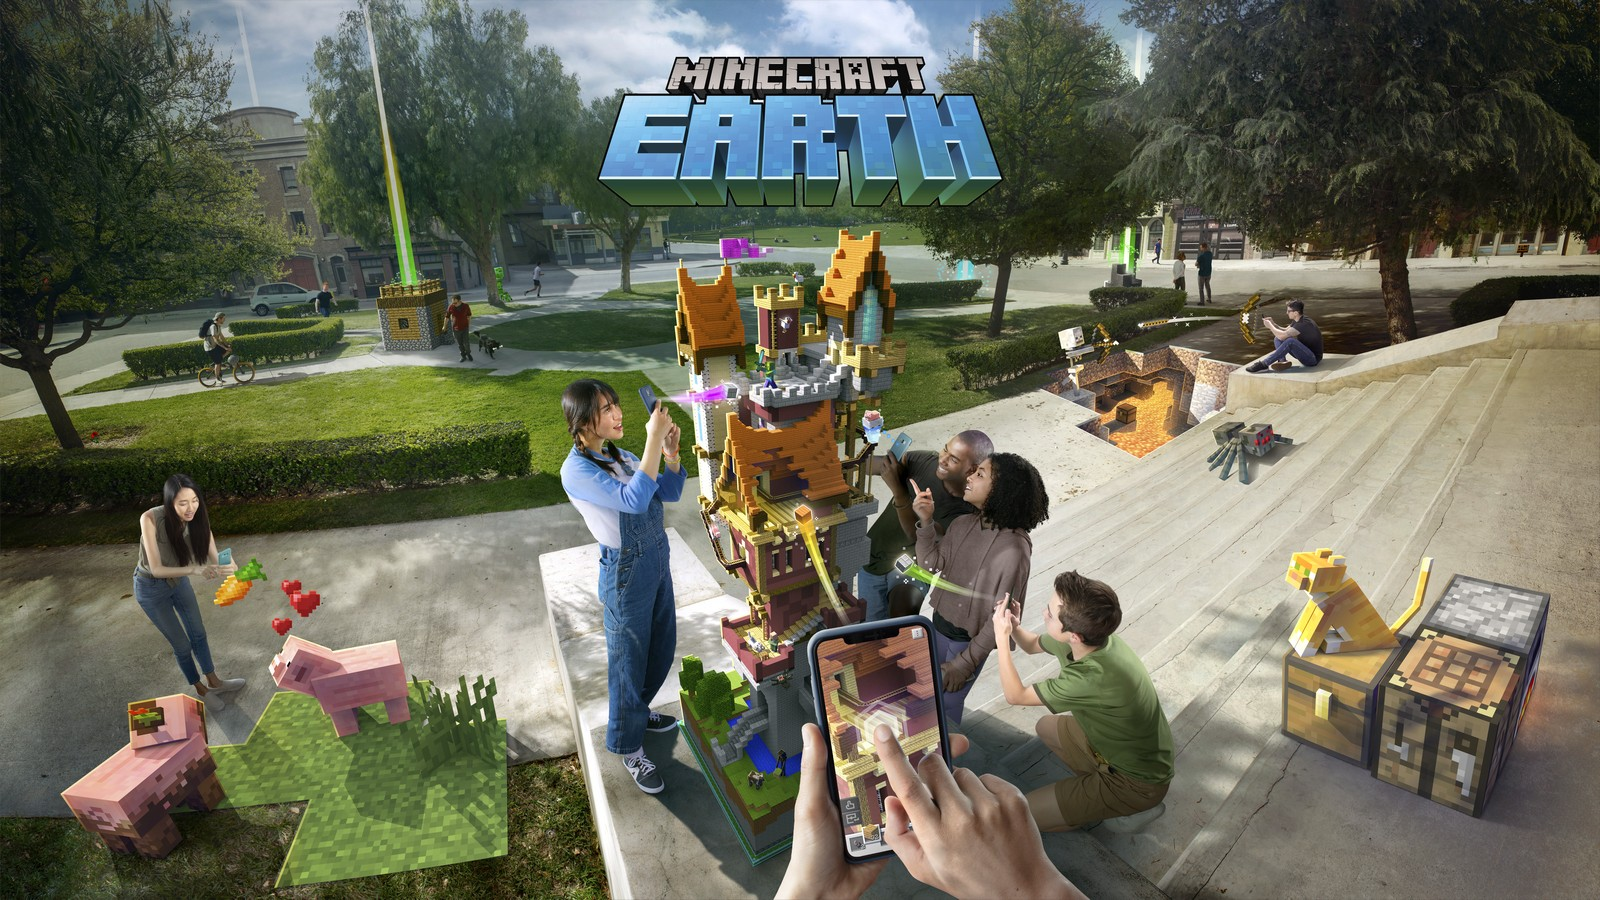 Minecraft Earth takes the original game and blends it with Pokemon Go